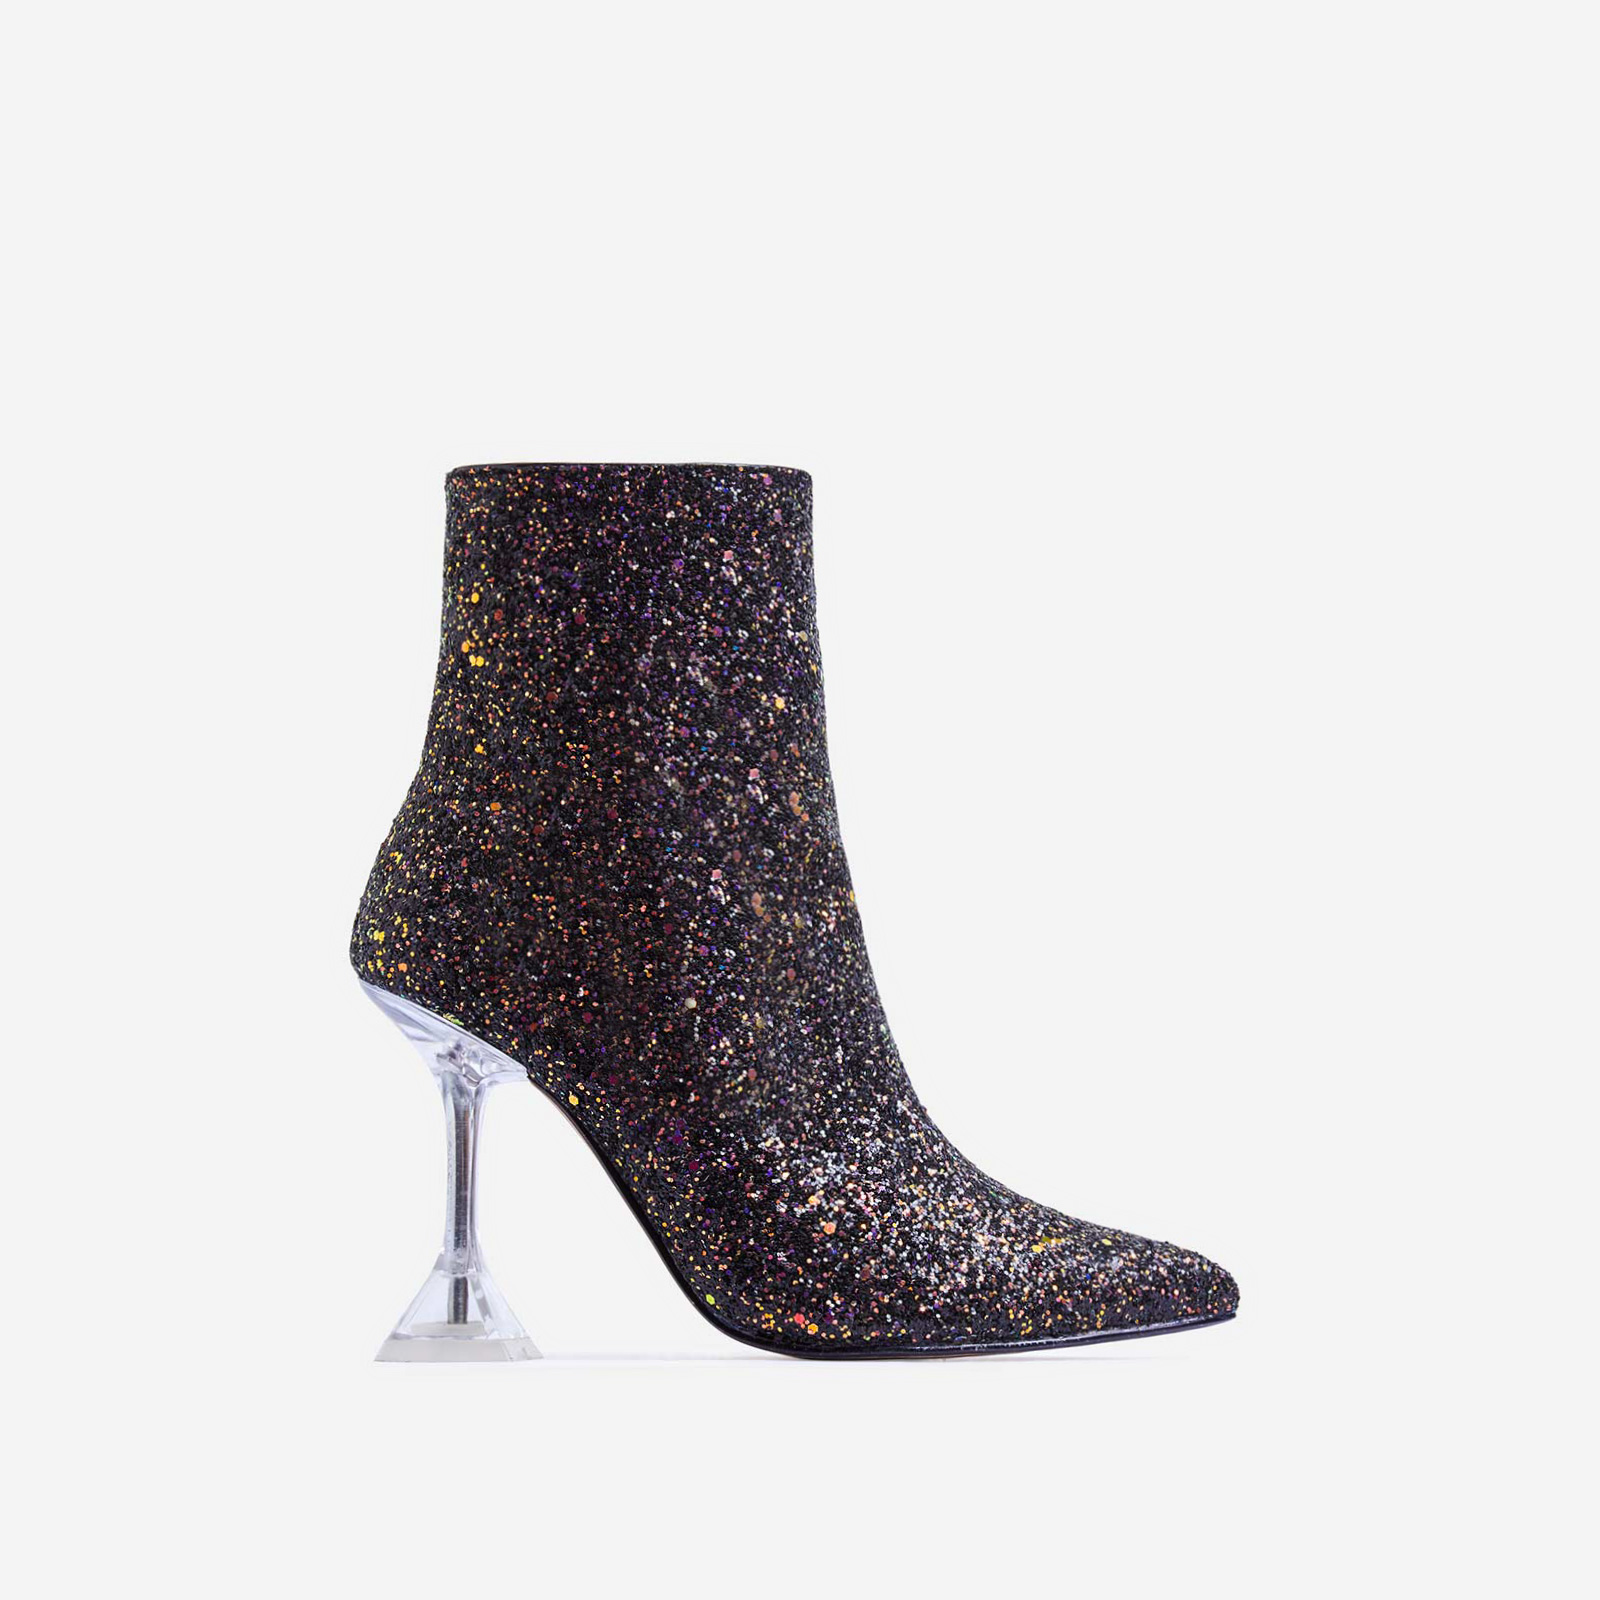 Bacardi Clear Perspex Pyramid Heel Ankle Boot In Black Glitter